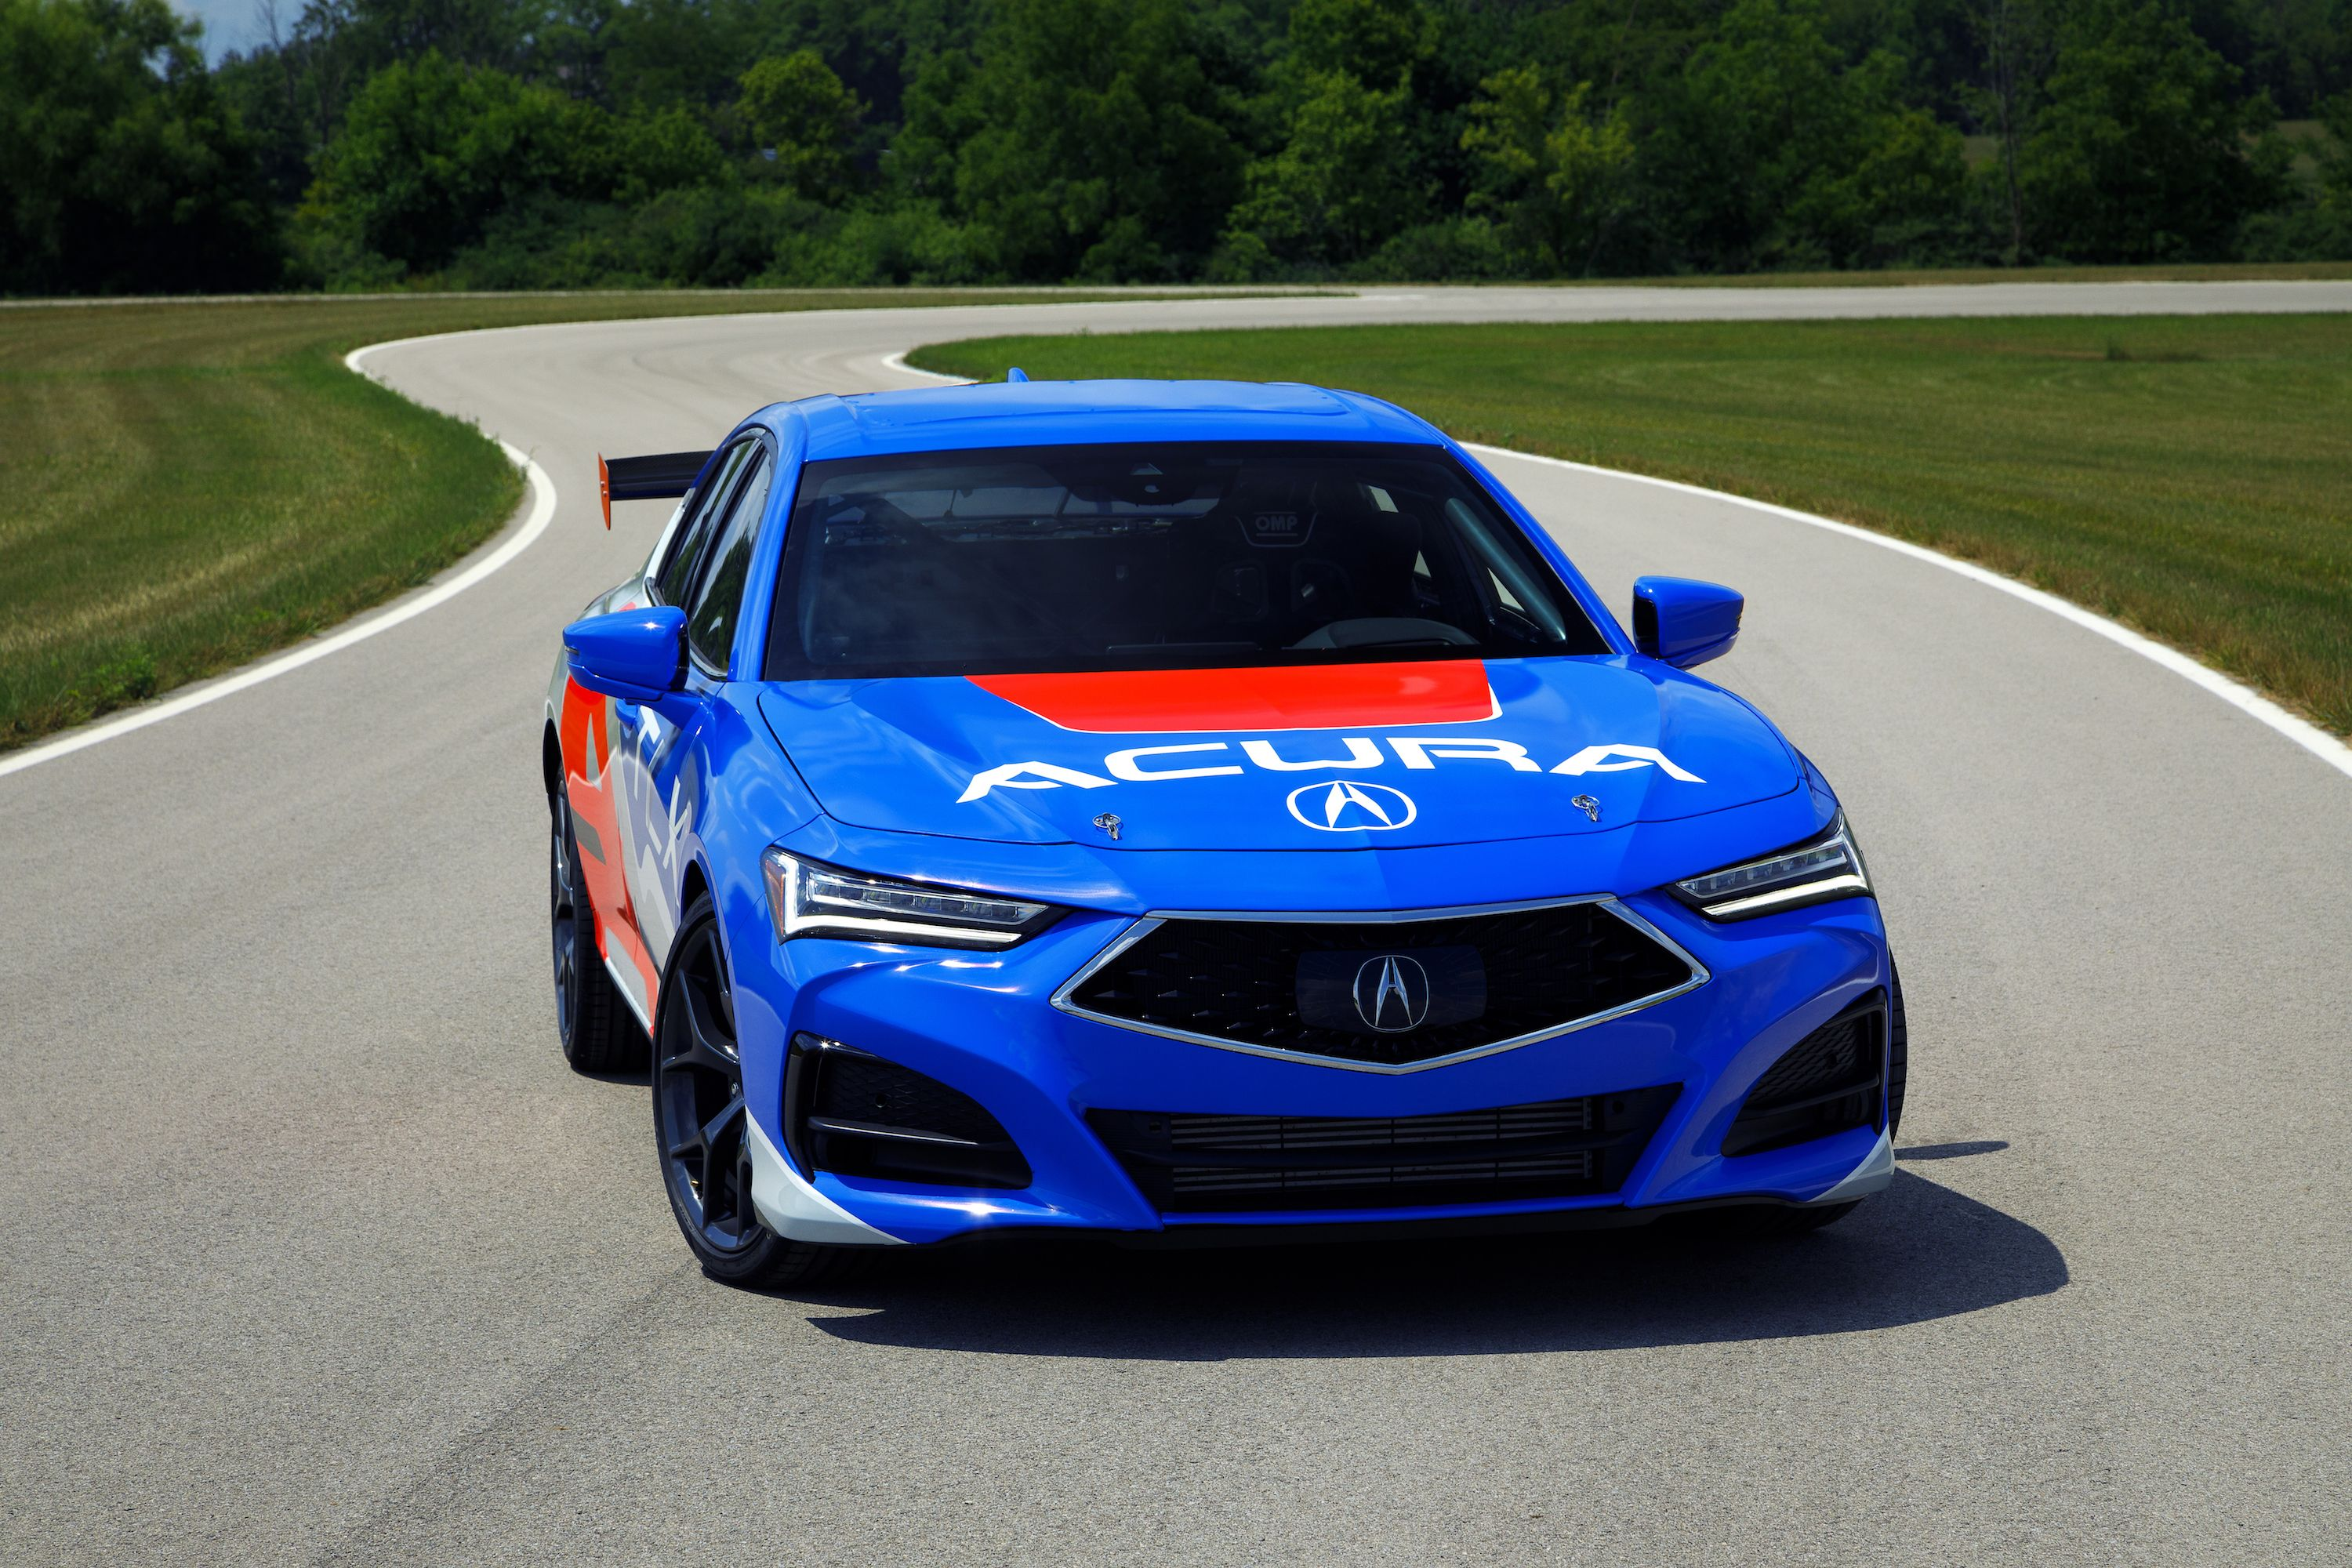 2021 Acura Tlx Type S Makes Up To 355 Hp And 354 Lb Ft Of Torque